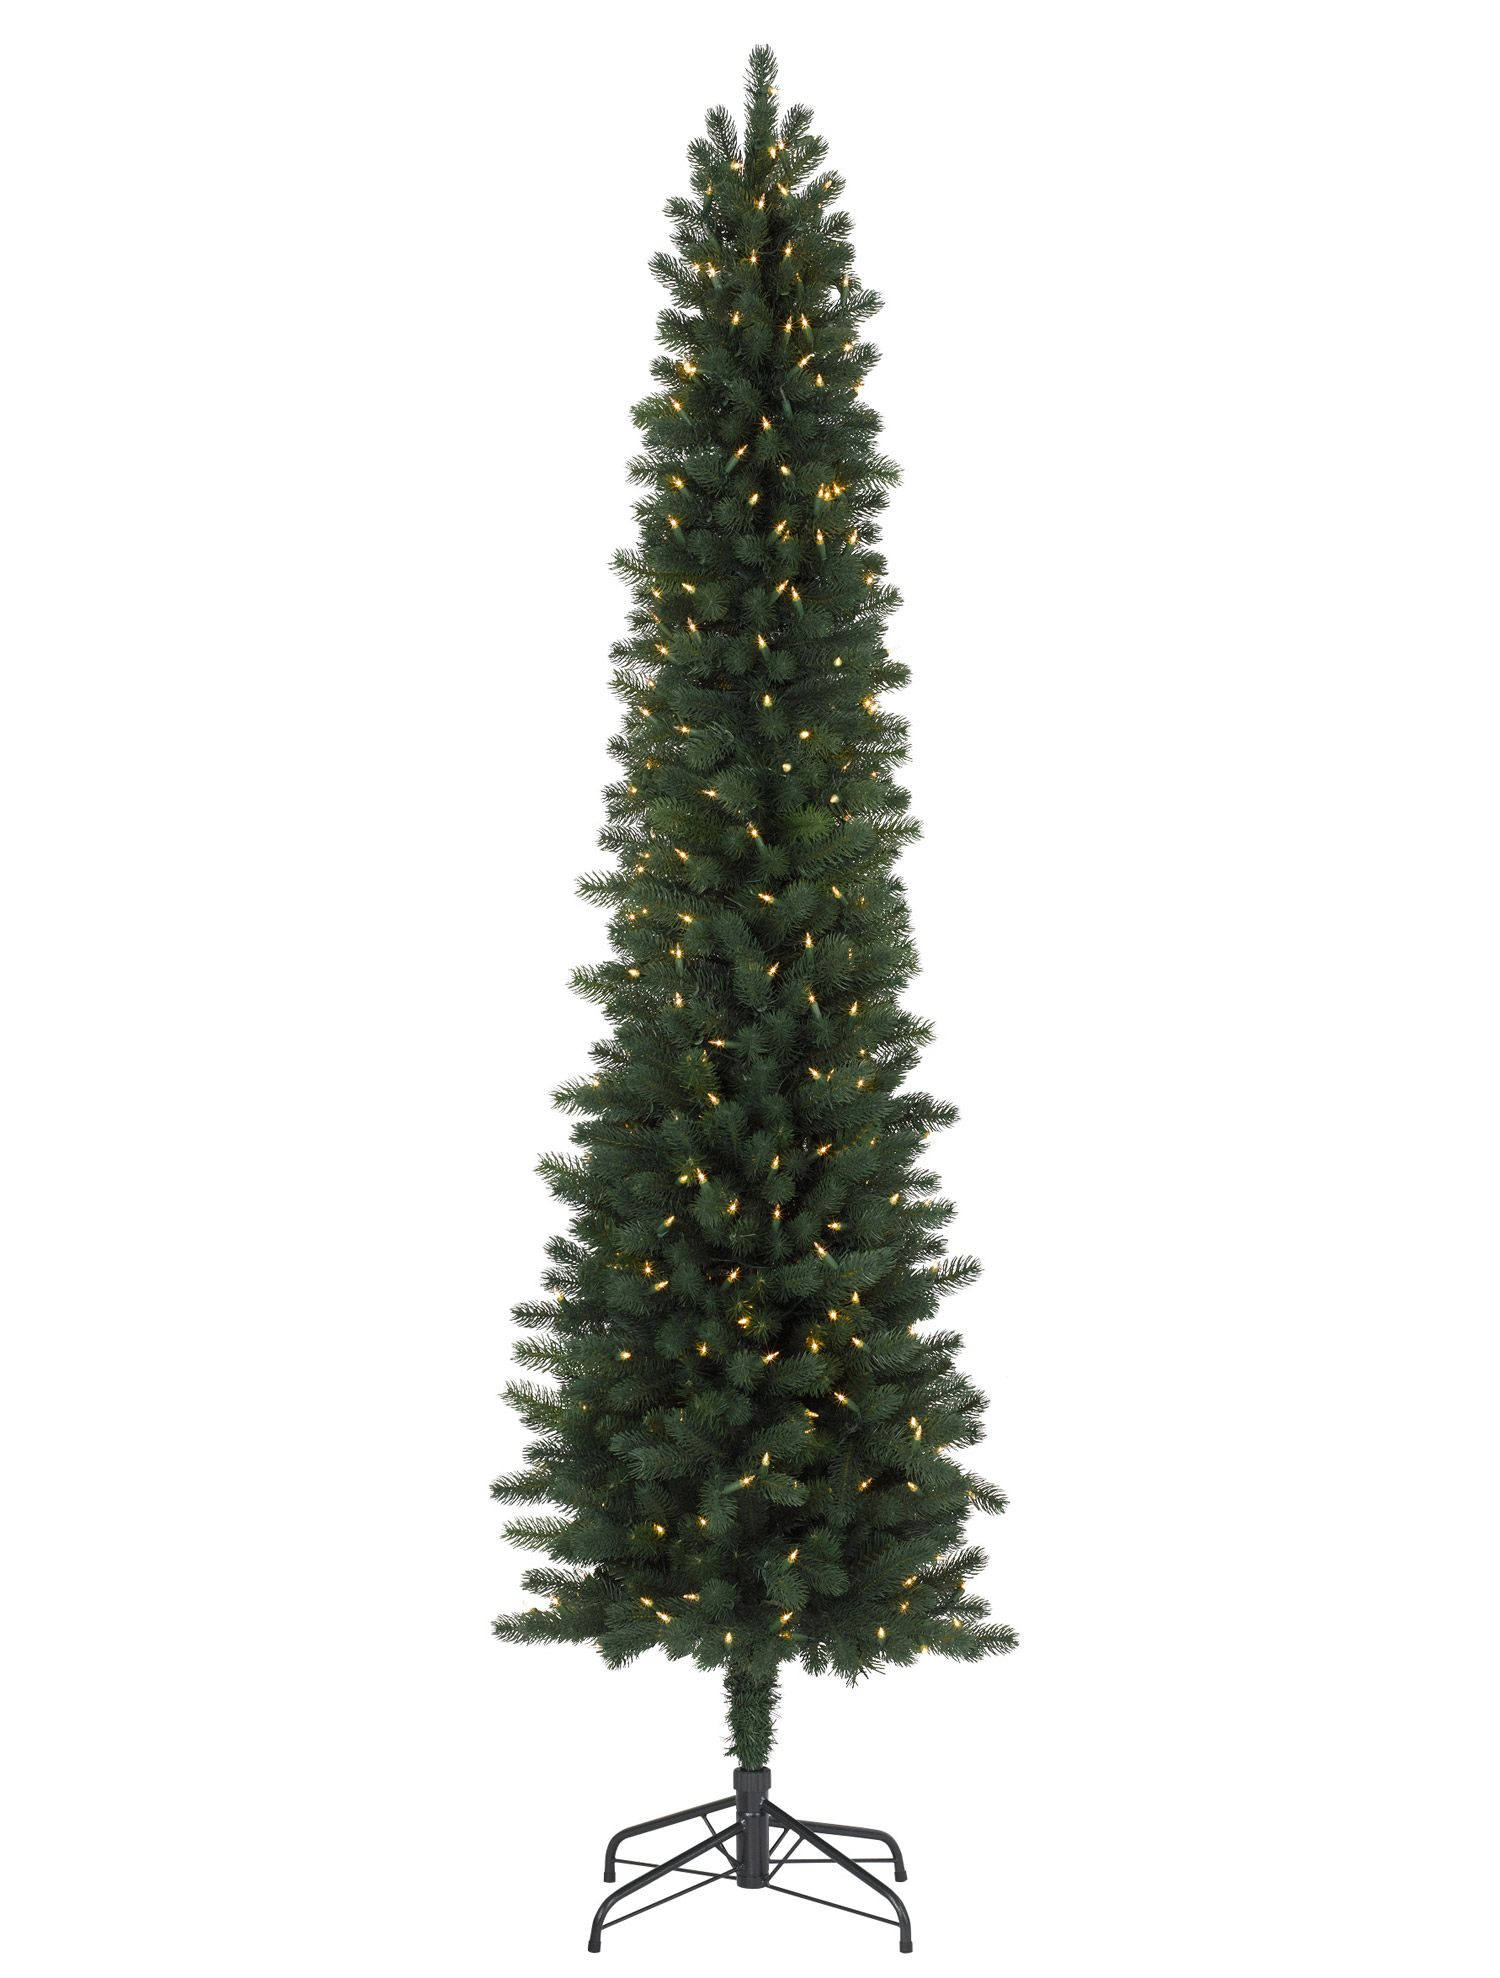 Sonoma Slim Pencil Christmas Tree | Home Decor | Pinterest ...